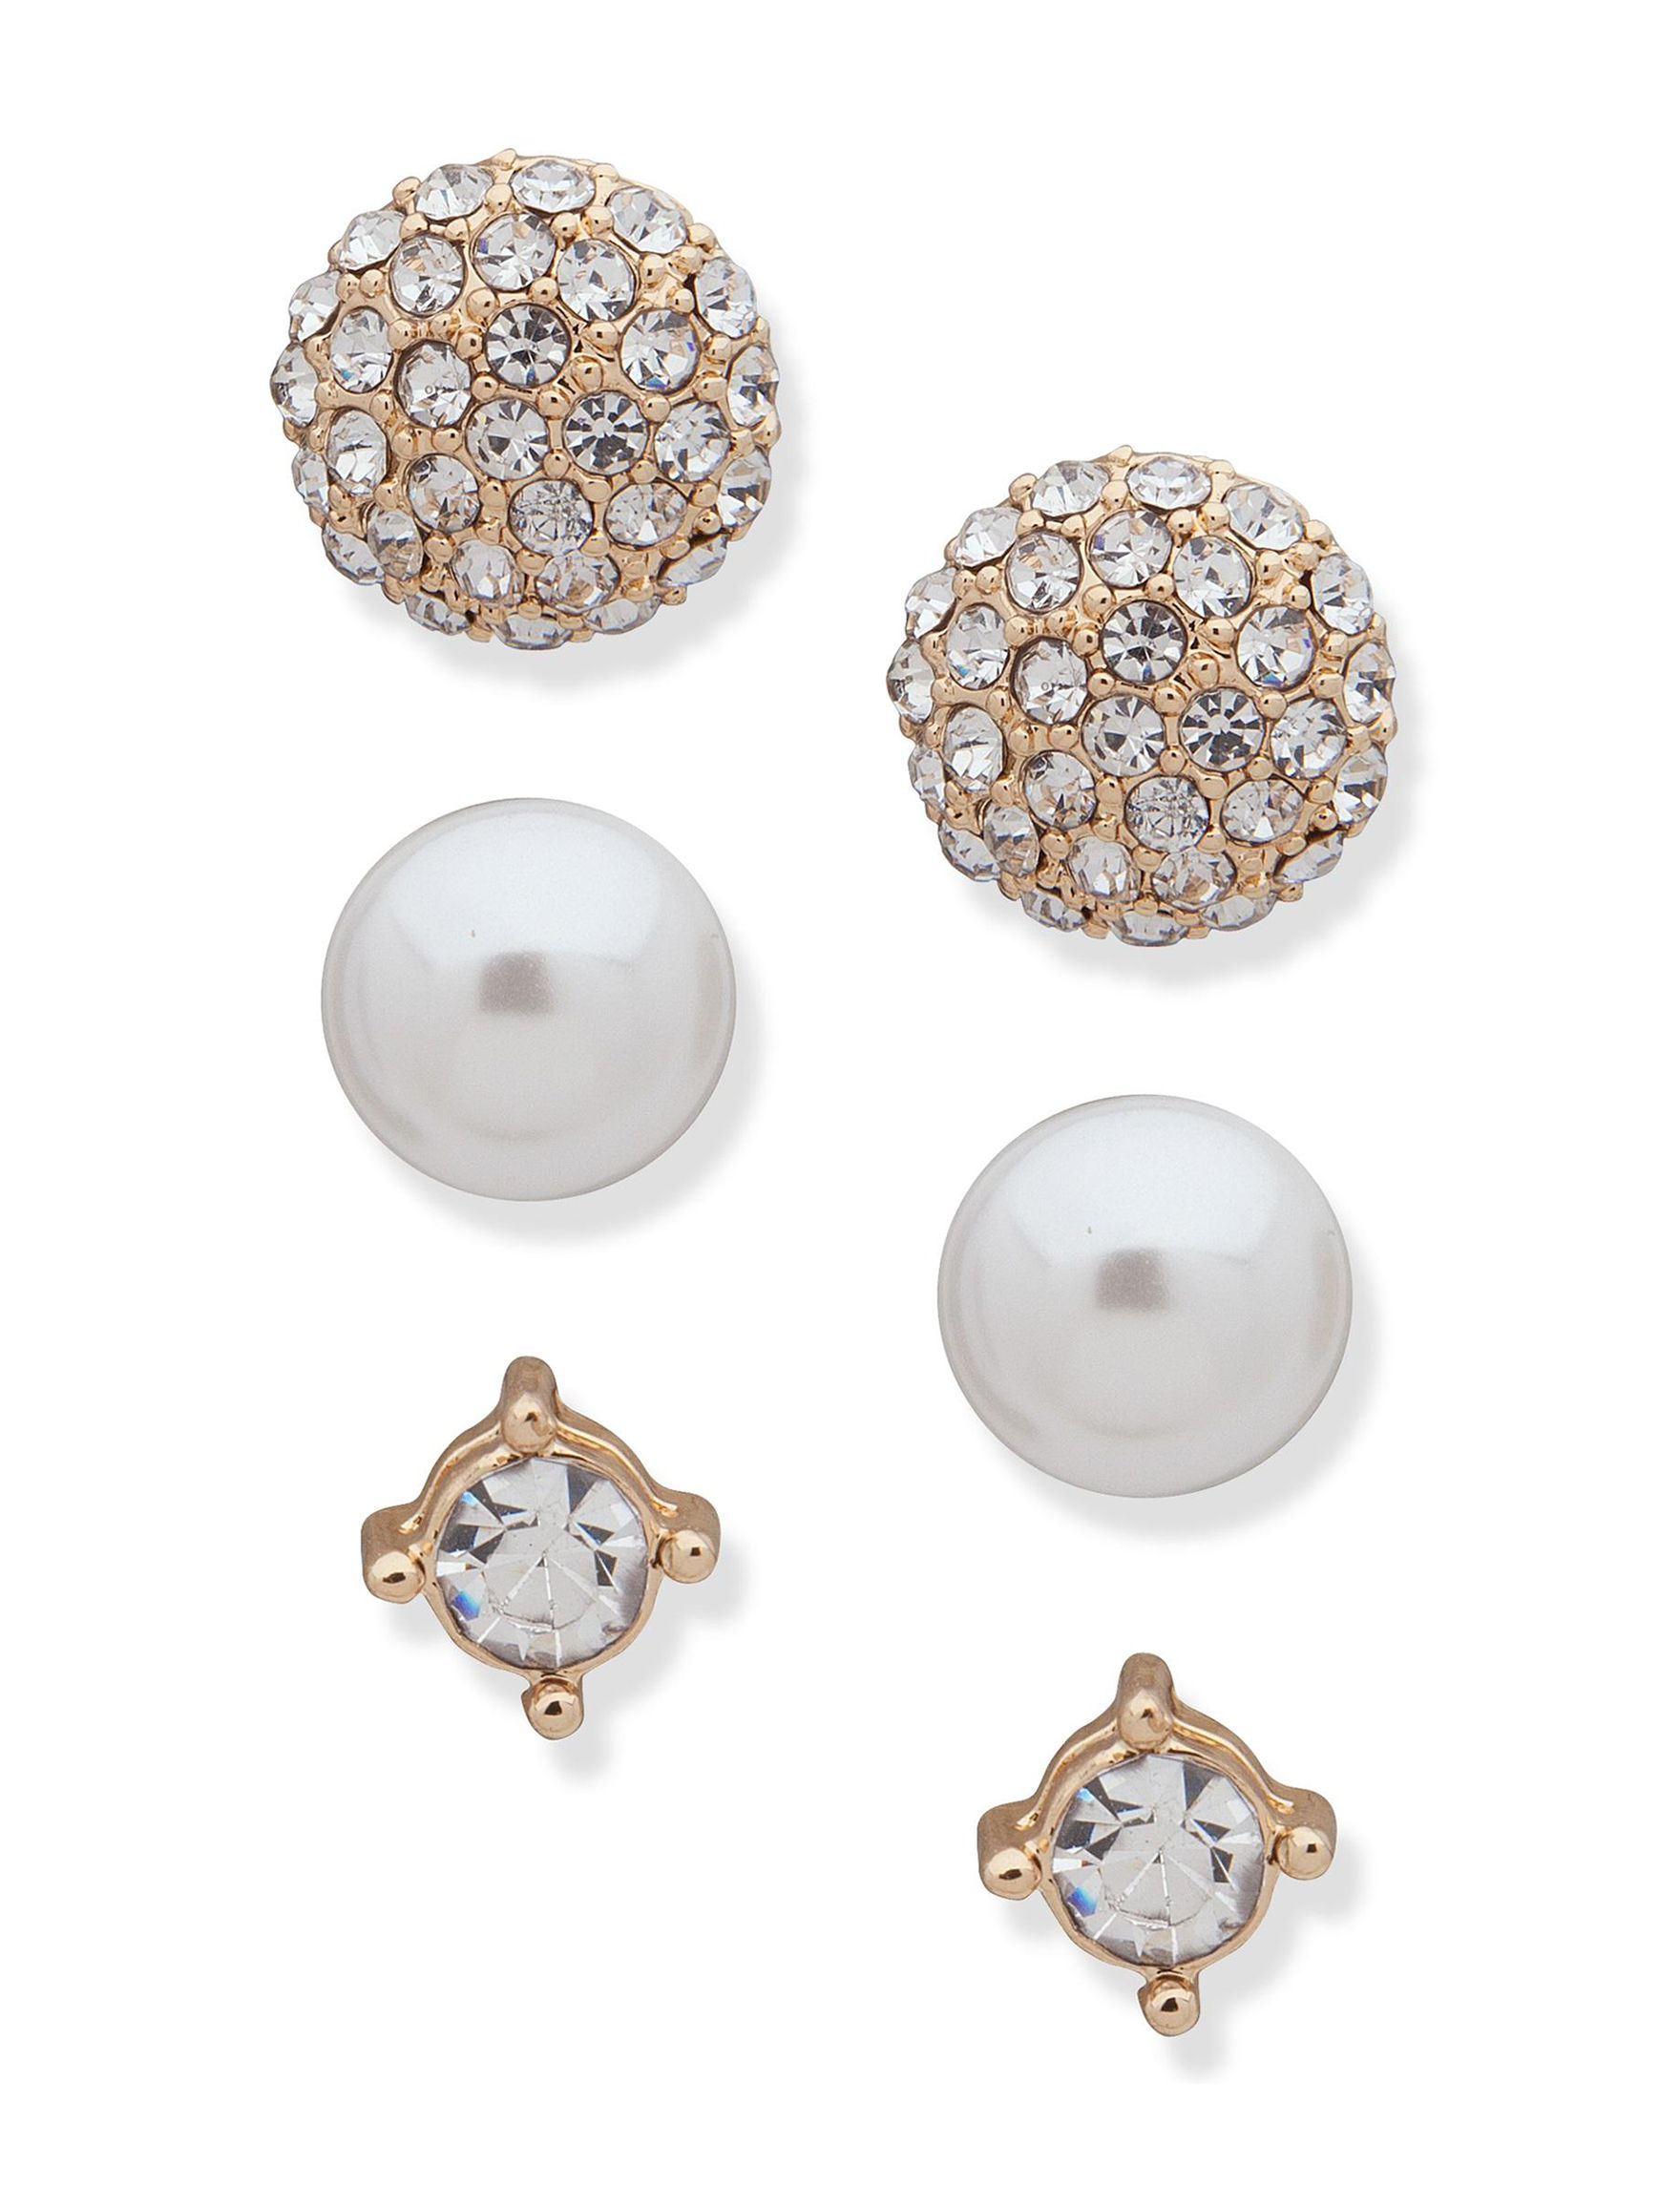 You're Invited Gold Studs Earrings Fashion Jewelry